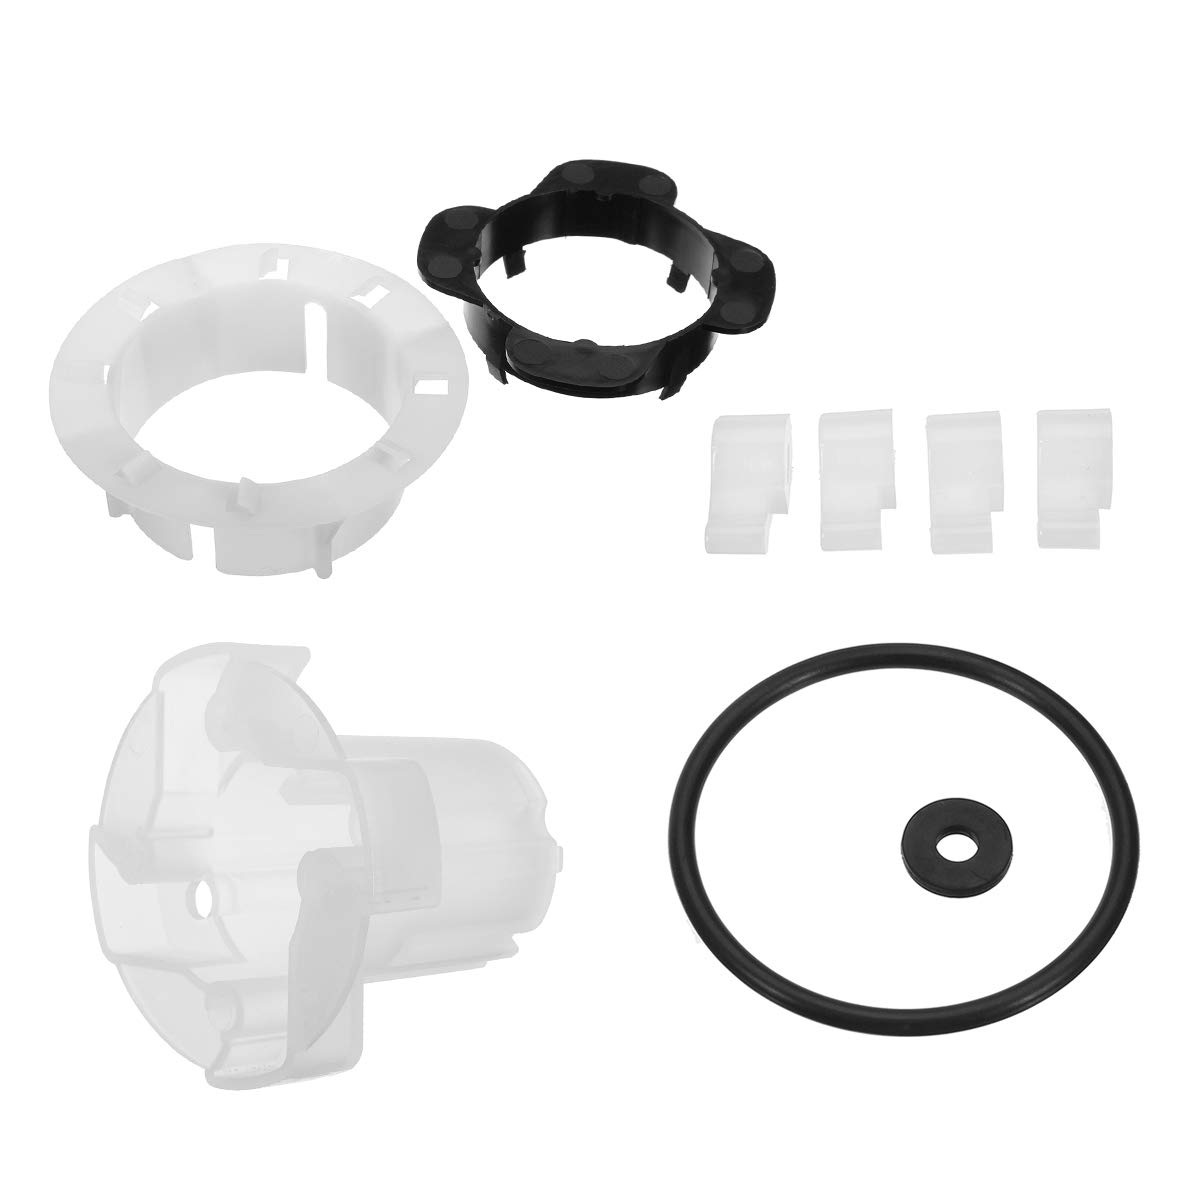 Agitator Cam Repair Kit for 285811 Kenmore Whirlpool Washer Replaces 3363663 AP3138838 PS334650